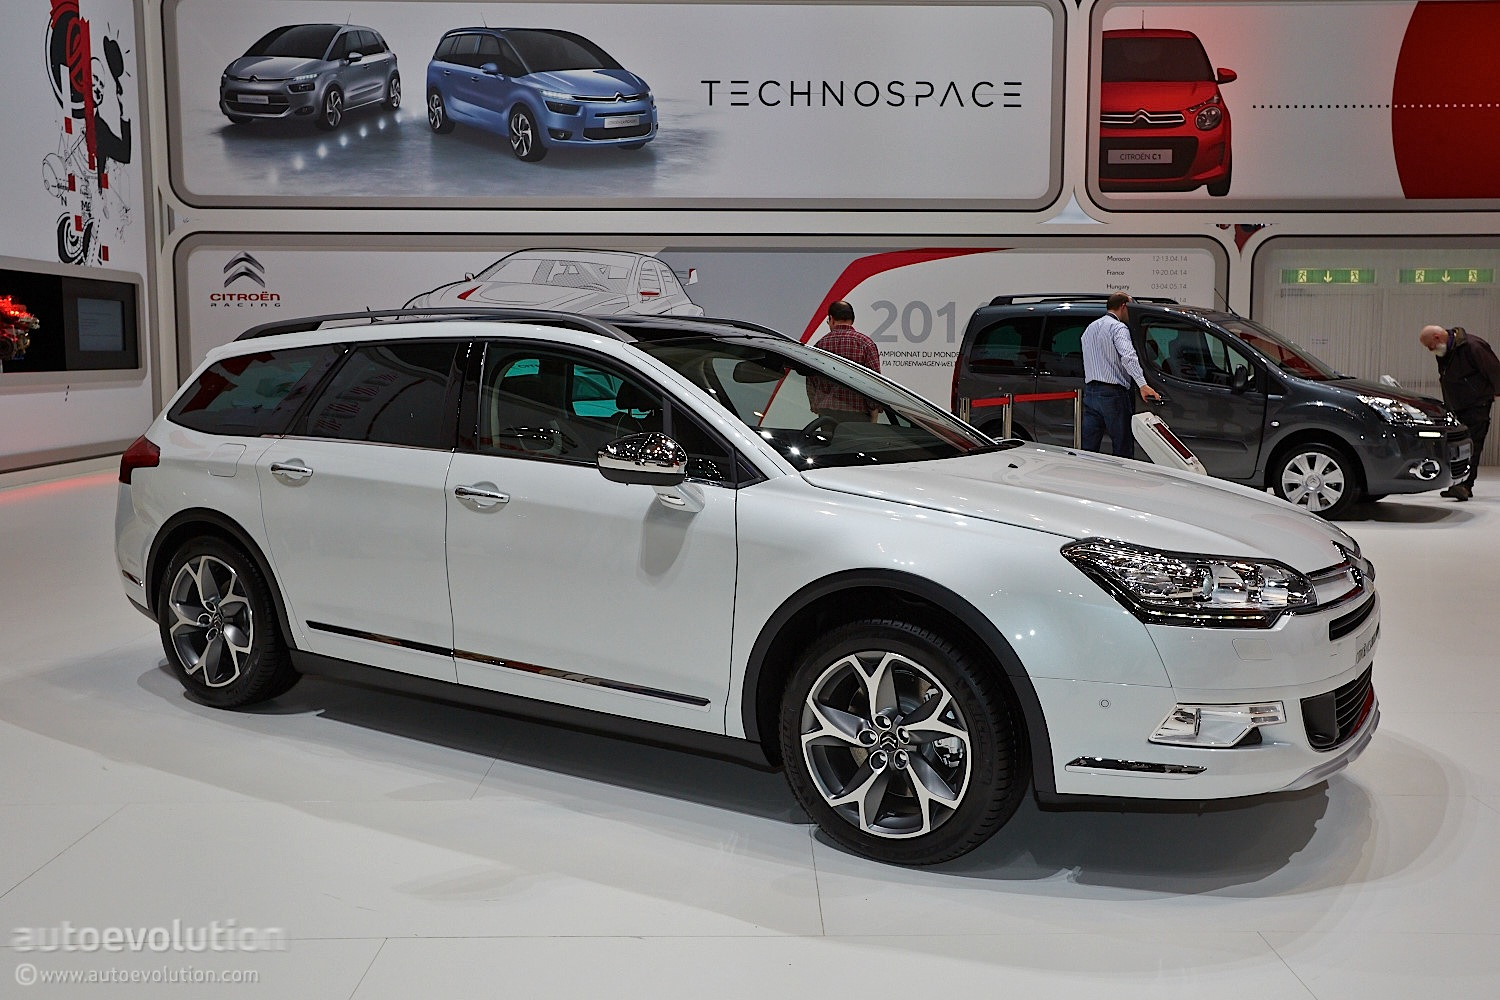 geneva 2014 citroen c5 crosstourer live photos. Black Bedroom Furniture Sets. Home Design Ideas